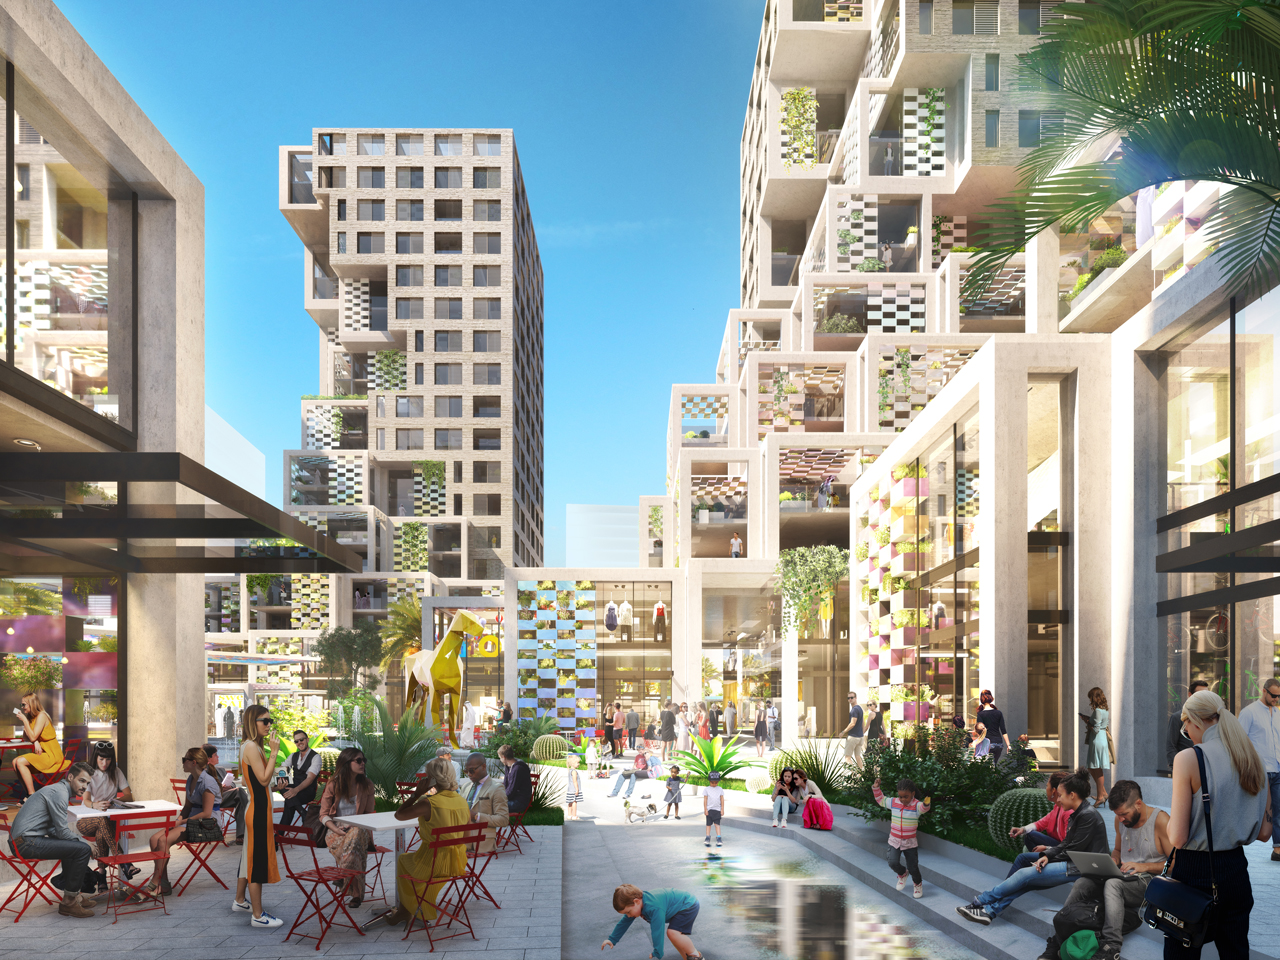 MVRDV reveals design for Pixel, a 76,000m2 mixed-use project in the United Arab Emirate